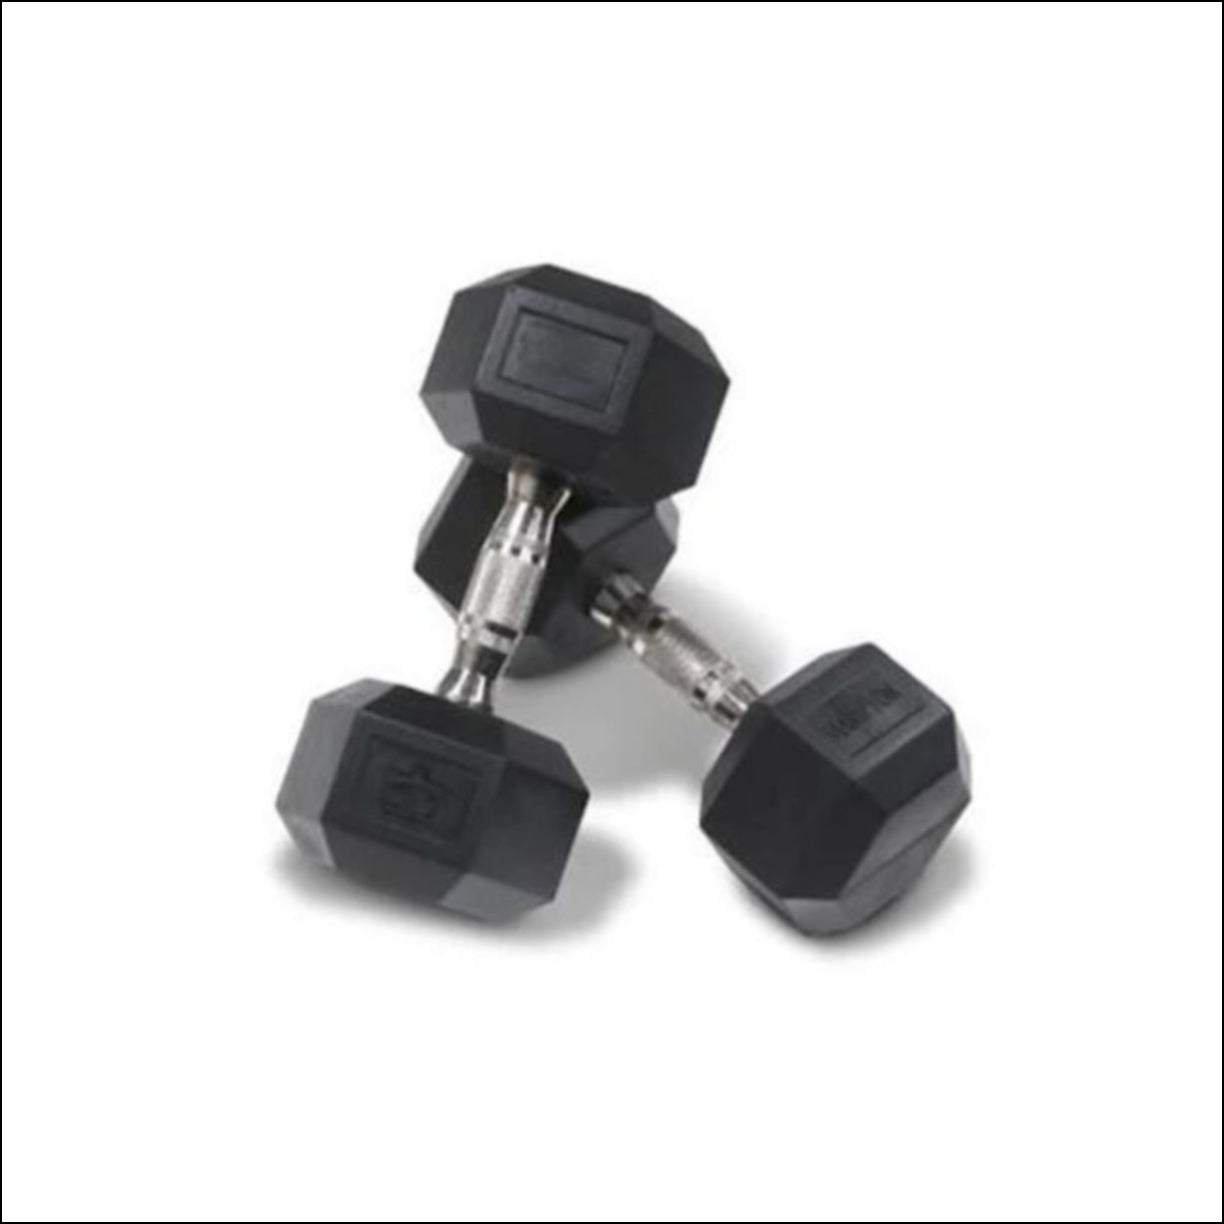 PAIR OF 4-KG RUBBER HEX DUMBBELLS  Muscle Motion Rubber coated hexagonal dumbbells with ergonomic handles are designed for increased comfort and improved durability. Rubber coating reduces noise improves life cycle of the product  (other finishes such as chrome and cast iron are subject to chipping and rust). Rubber coated dumbbells are also kinder on floor surfaces. The hexagonal shaped ends are designed to prevent the dumbbell from rolling on the floor or dumbbell rack.